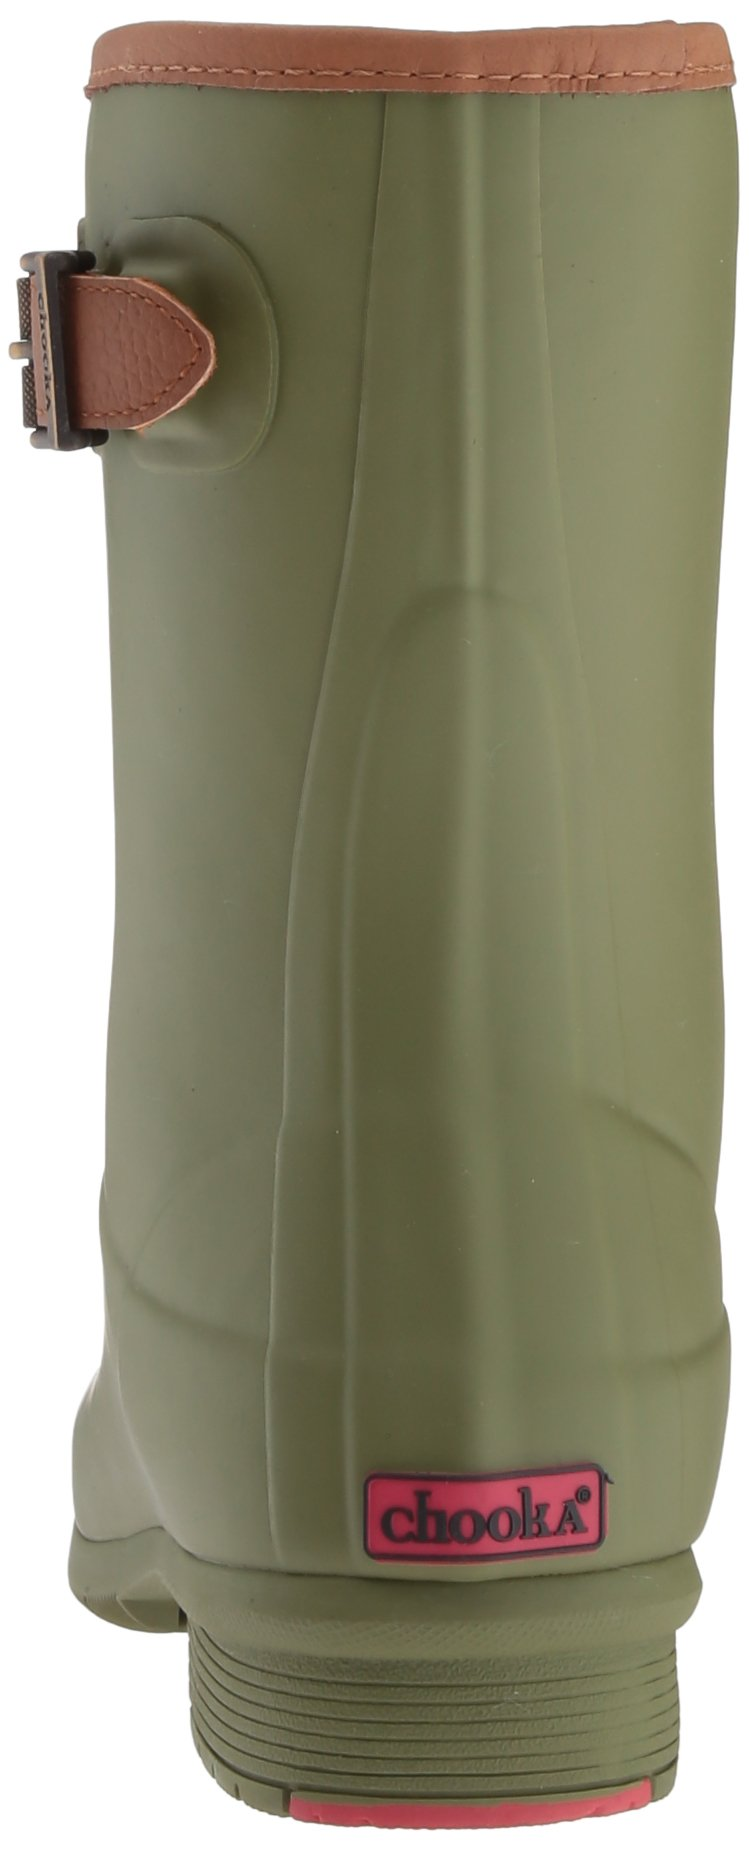 Chooka Women's Mid-Height Memory Foam Rain Boot, Olive, 9 M US by Chooka (Image #2)